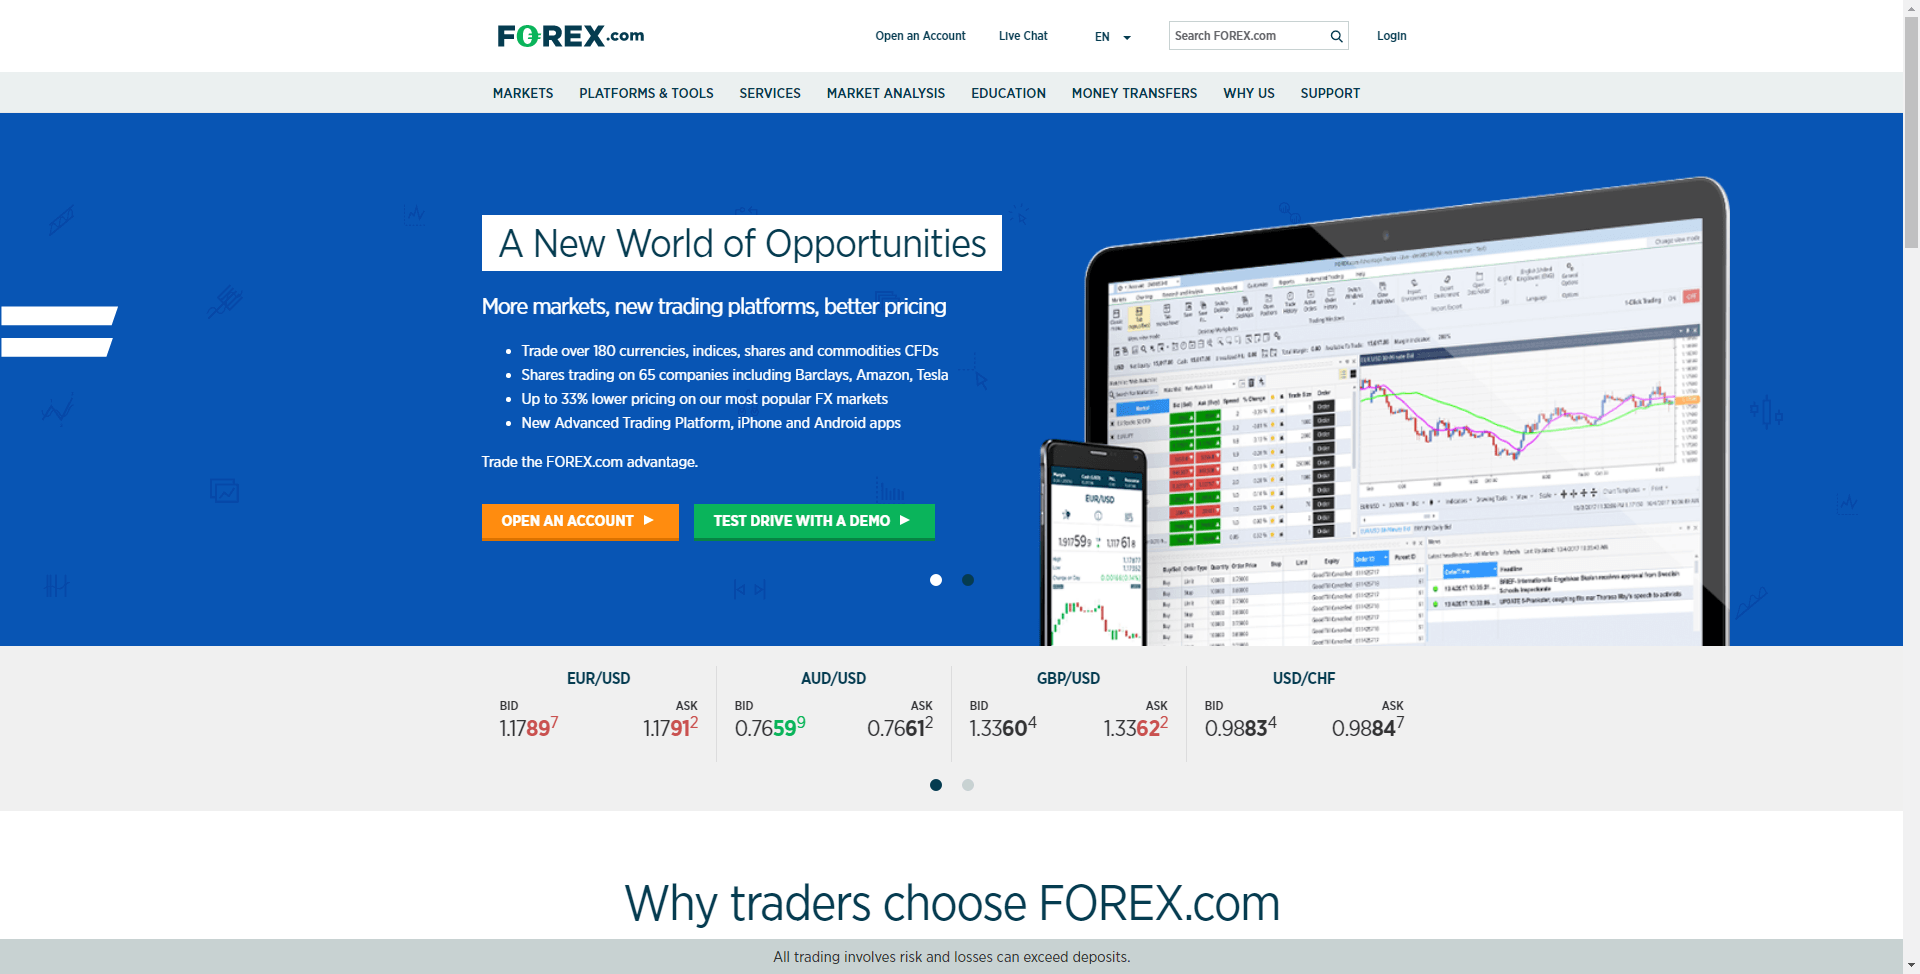 Forex.com reviews